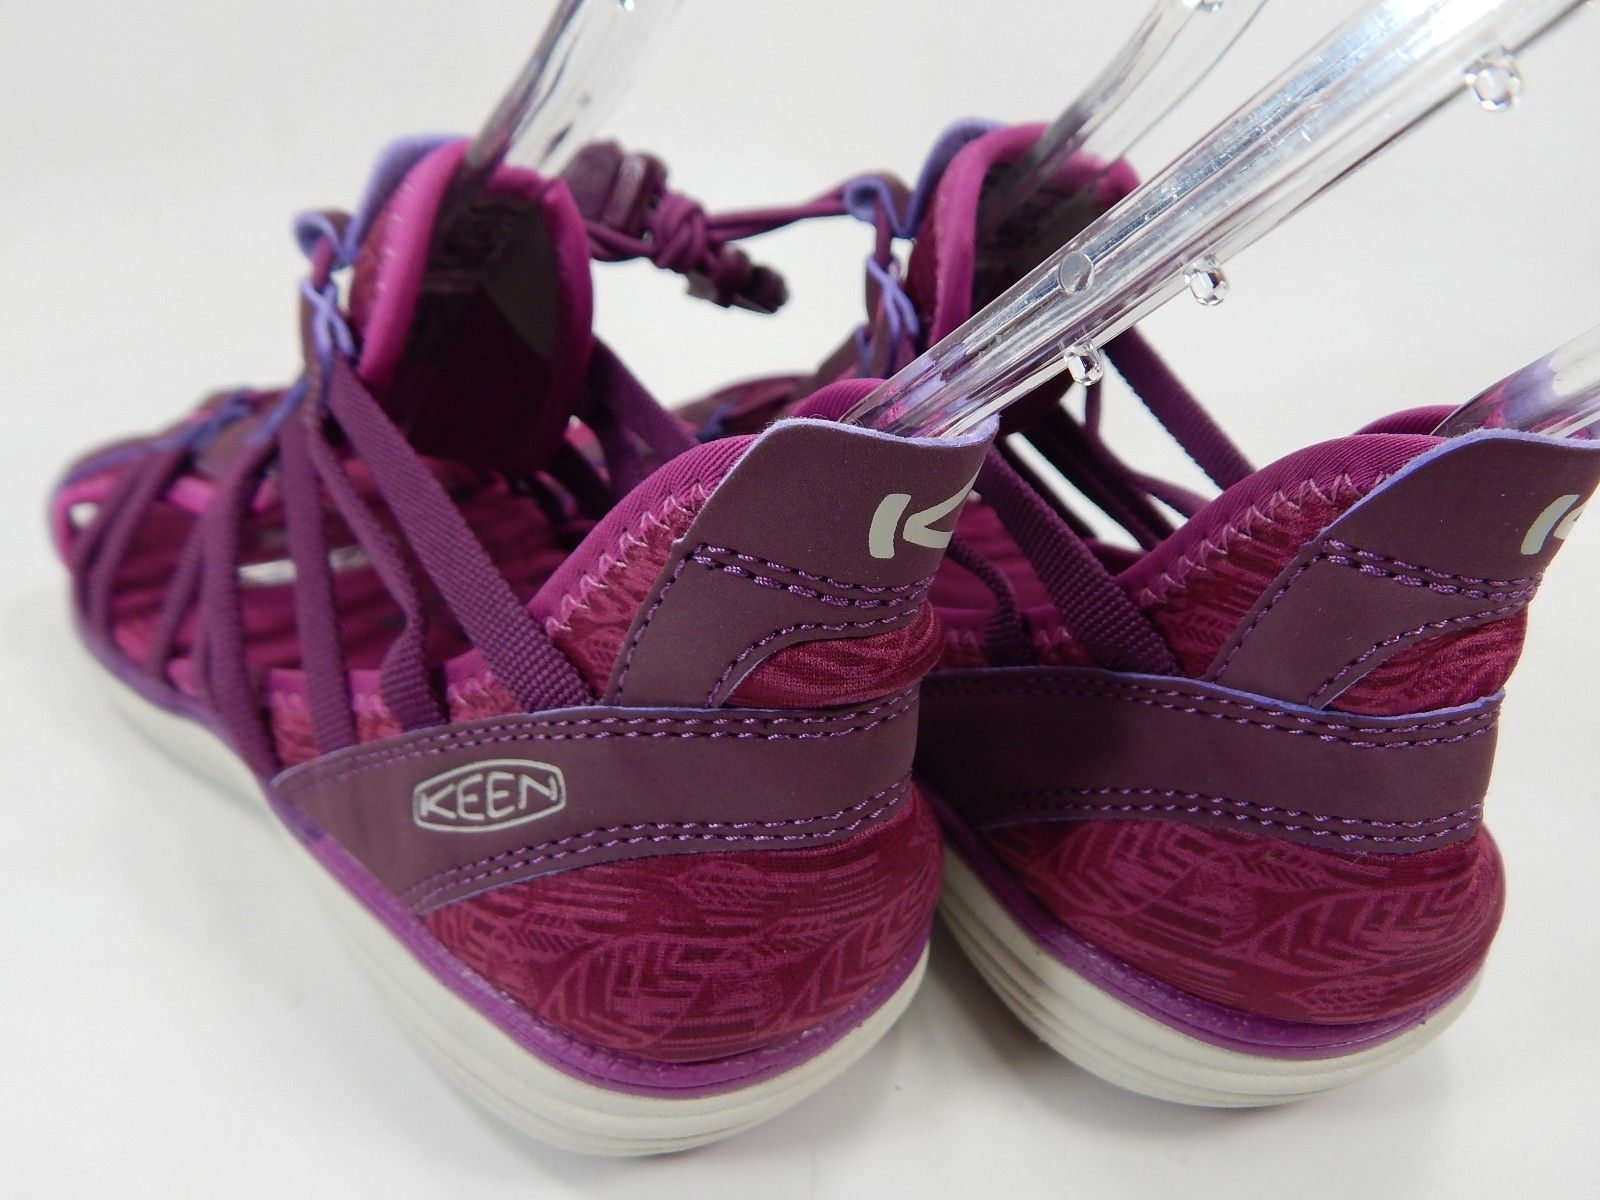 Keen Maya Gladiator Size US 7 M (B) EU 37.5 Women's Sports Sandals Dark Purple